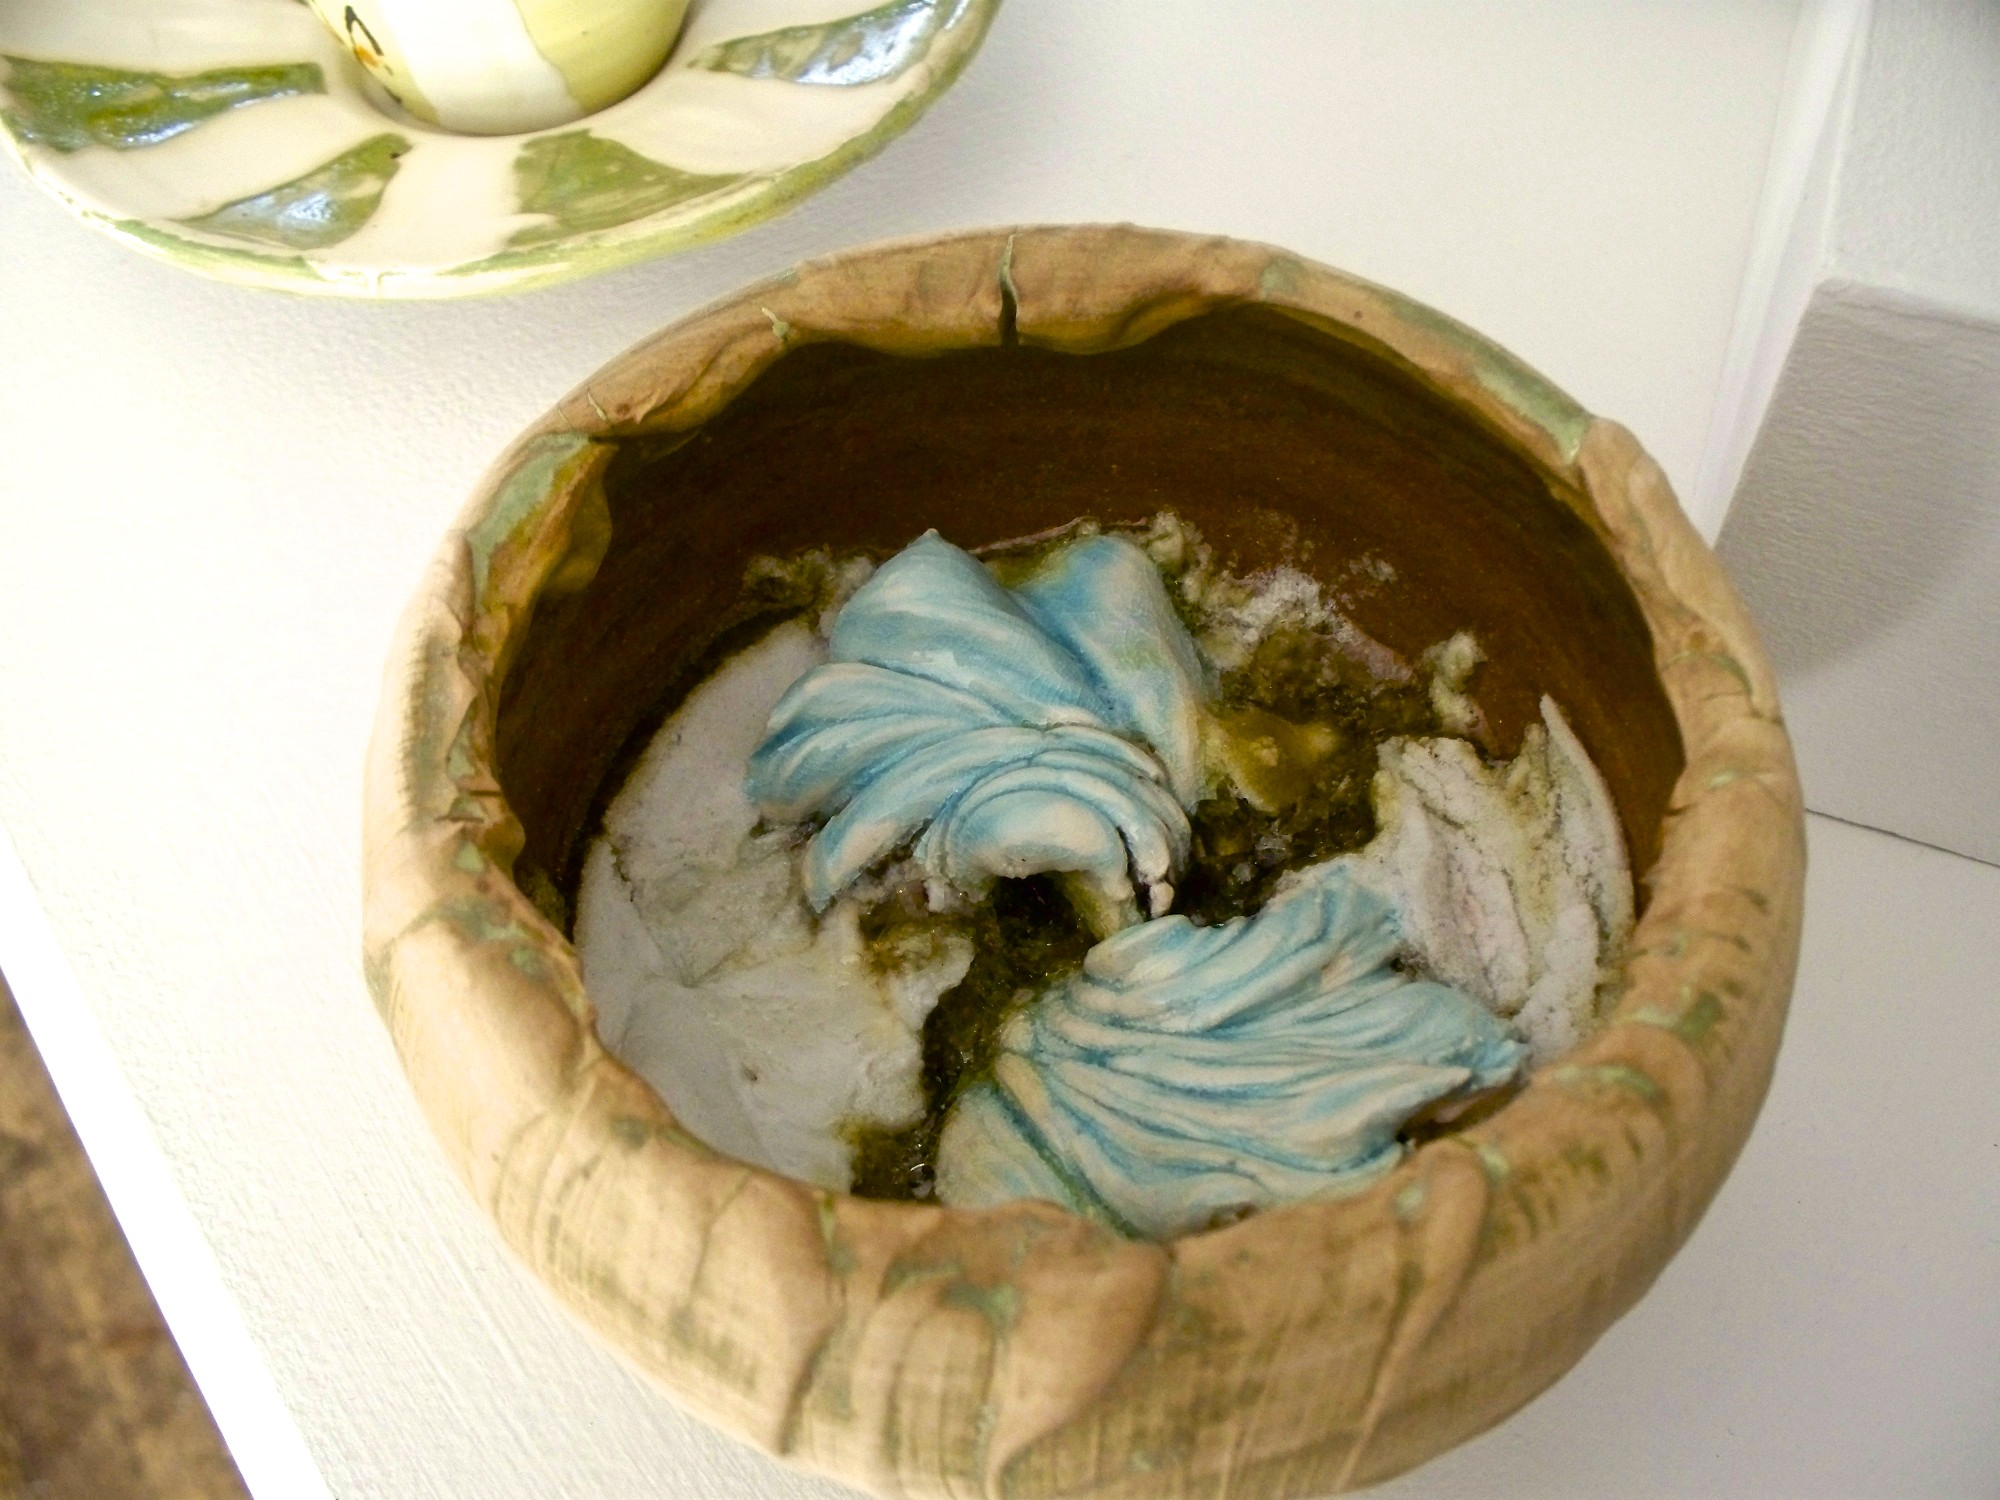 detail of 'sugar bowl' from 'afternoon break'